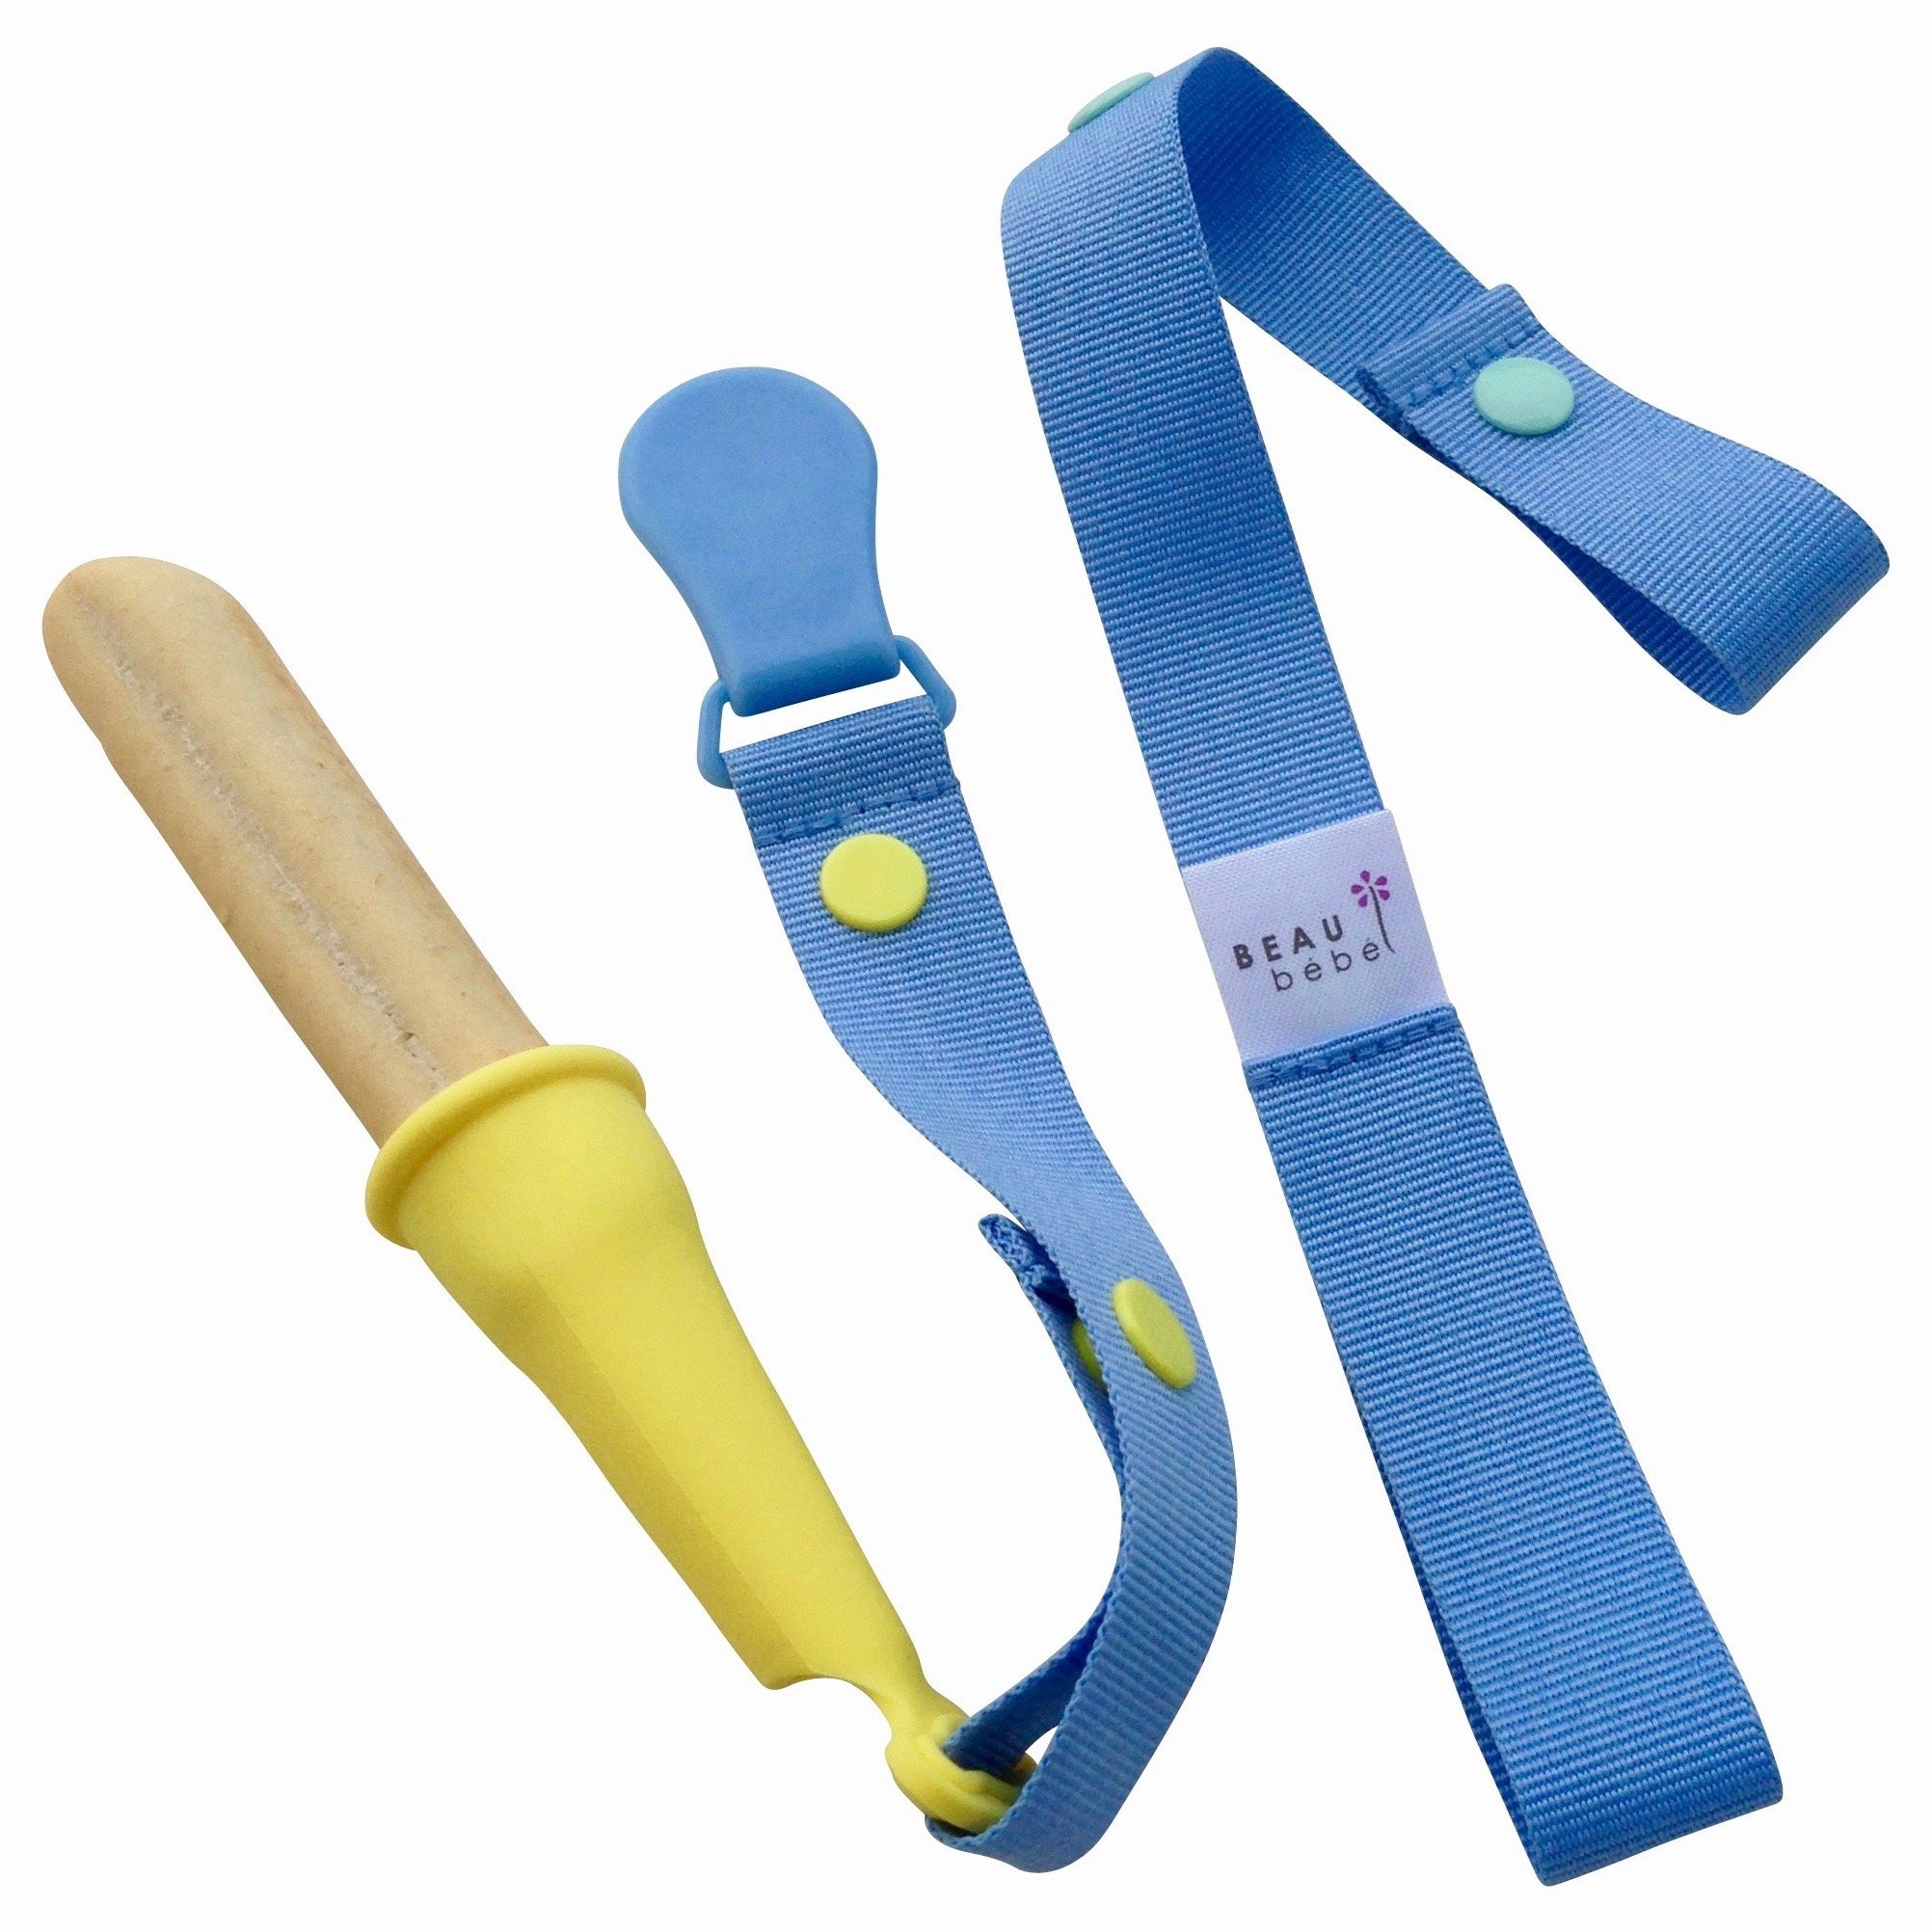 NEW | Oopsy Doopsy! | Multi-functional Teether & Toy Saver, Pacifier Clip | Holds Rusks, Spoons, Sippy-cup, Rattle | Baby Gift | 0-18 Months (Blue/Banana) by Beau Bébé